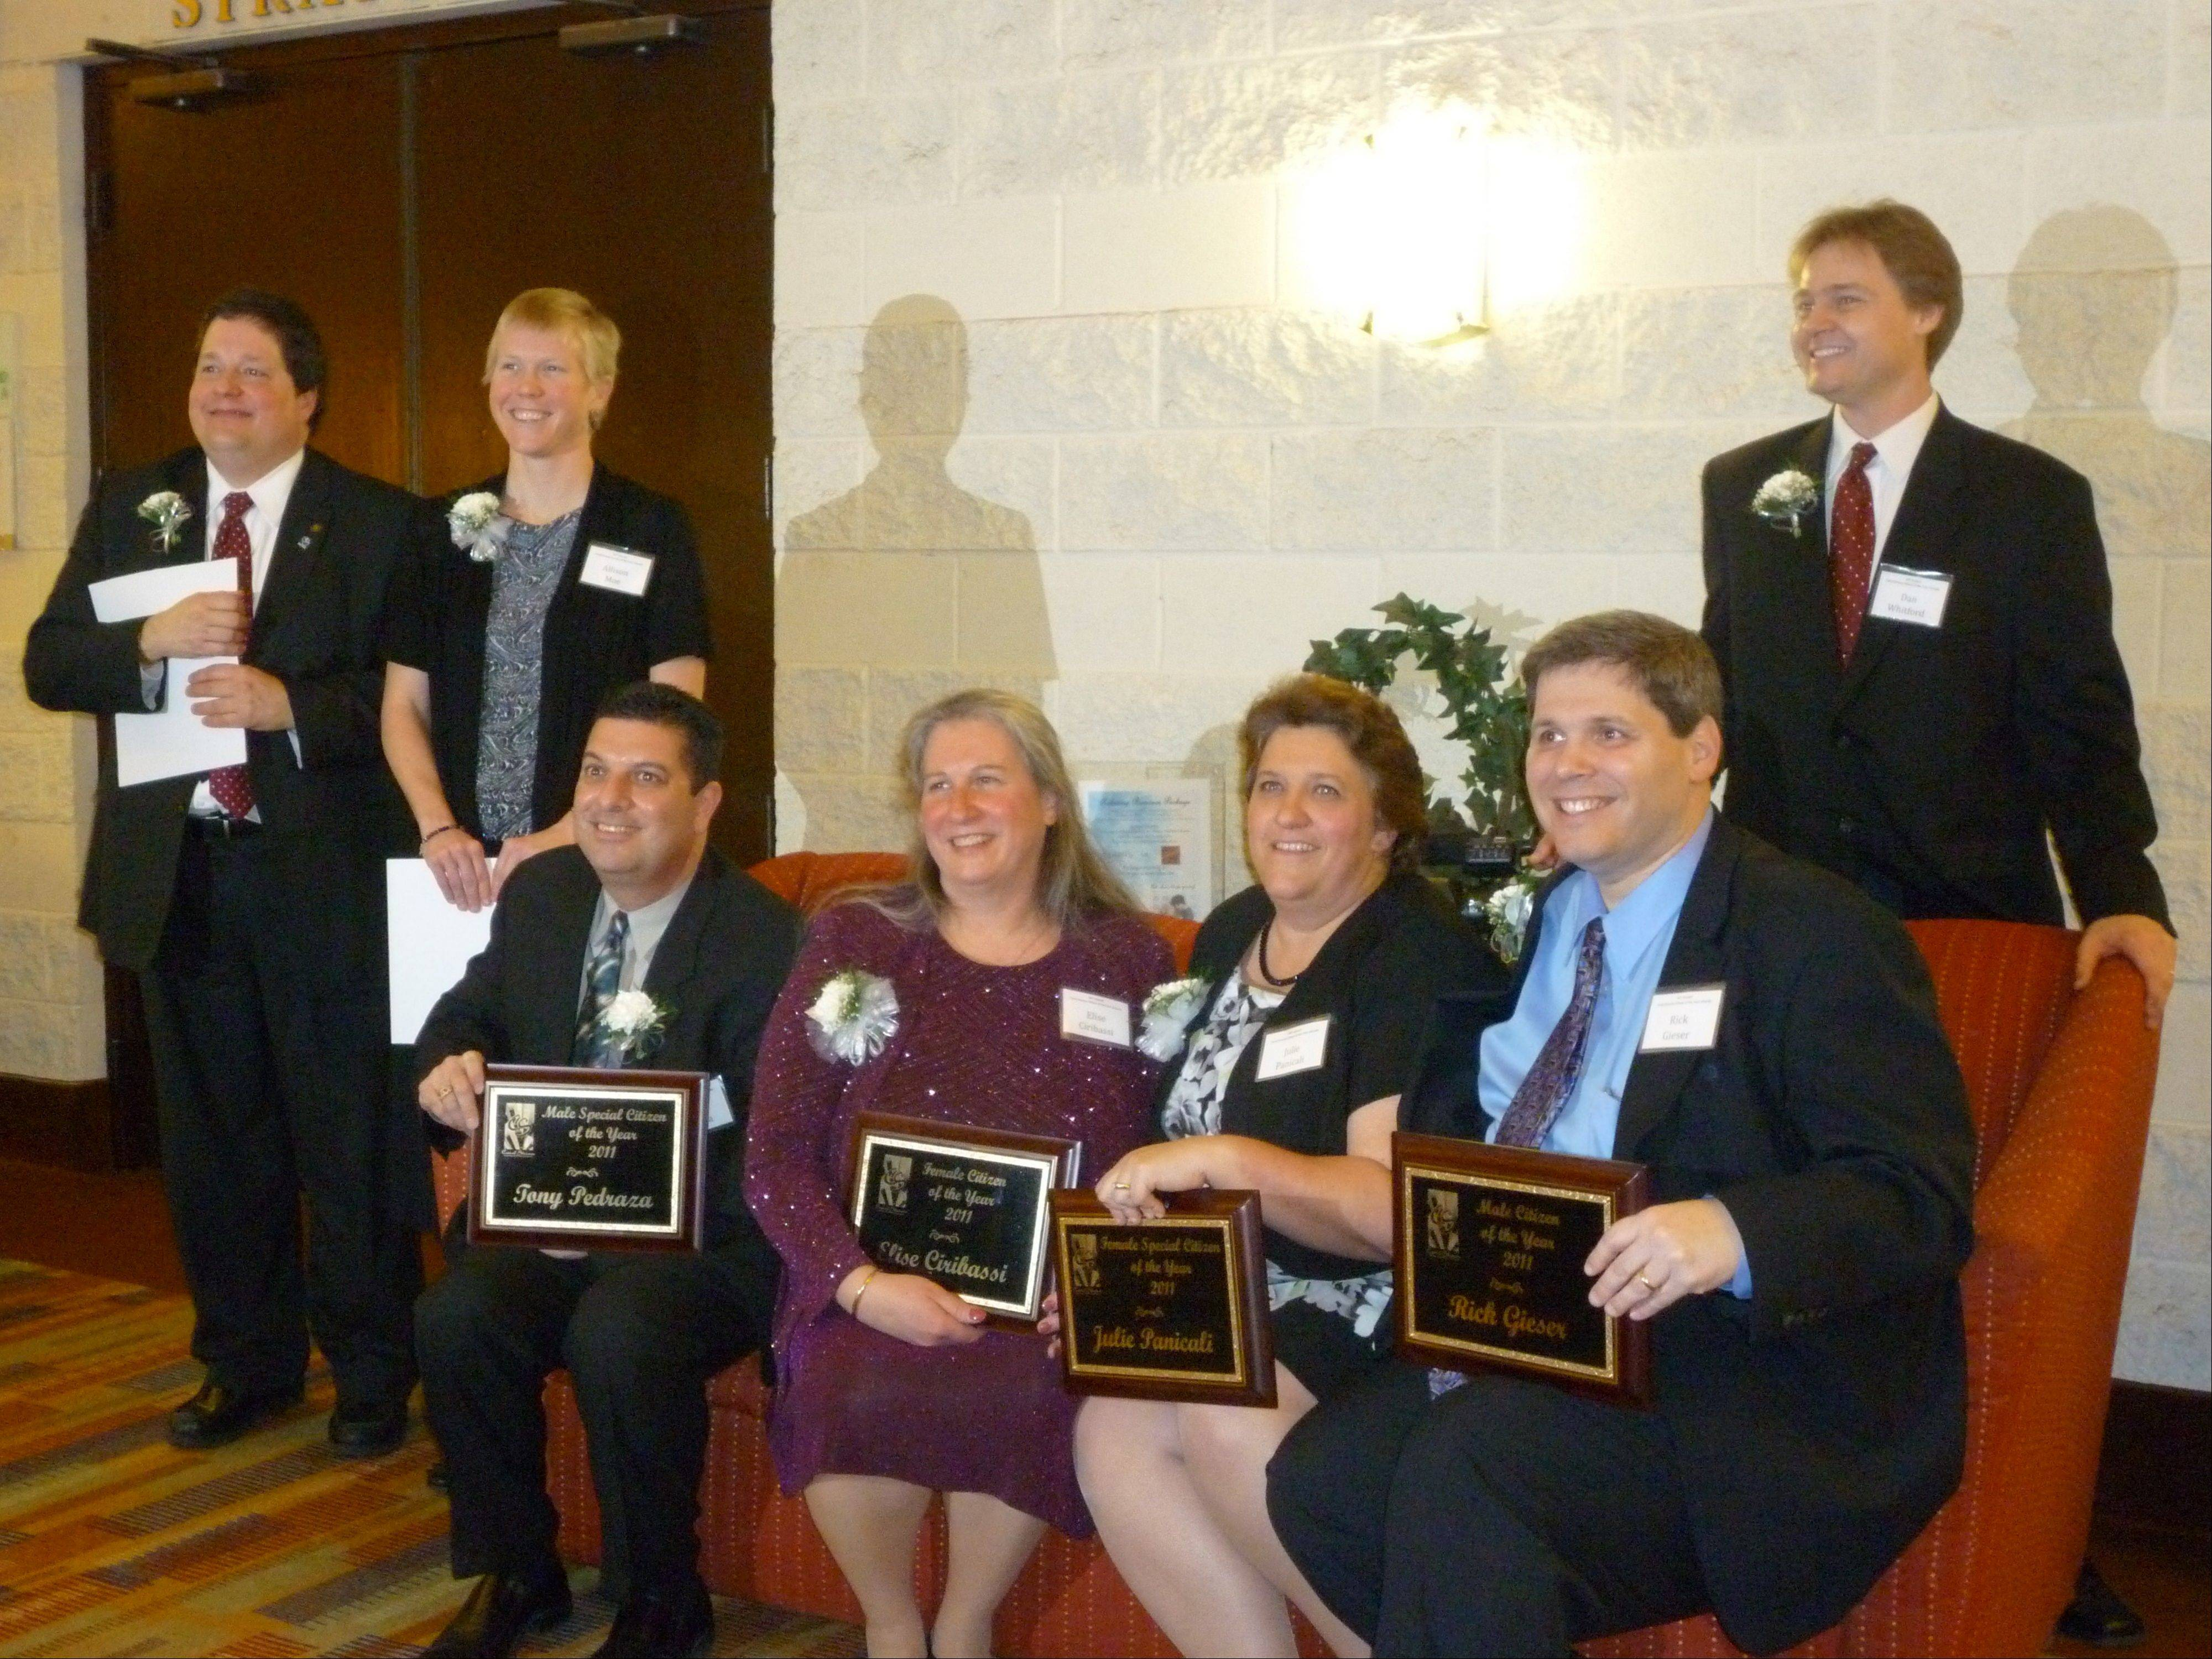 Winners of the 2011 Carol Stream Citizen of the Year awards were recognized at a banquet last weekend. The awardees are, left, Jonathan Fischer, Alison Moe, Tony Pedraza, Elise Ciribassi, Julie Panicali, Rick Gieser and Dan Whitford.